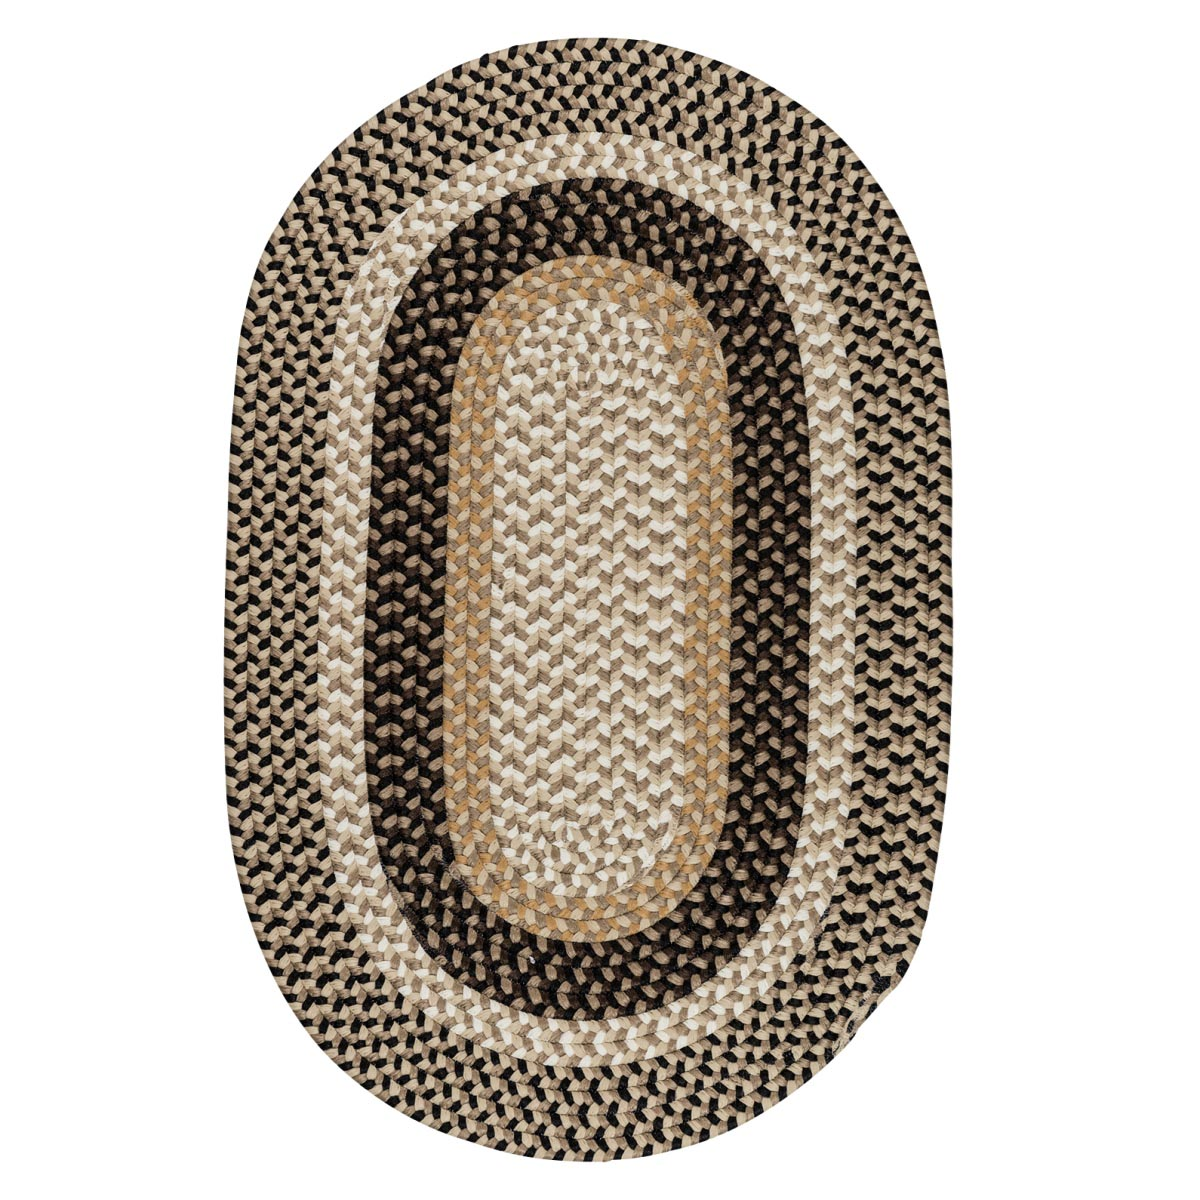 Burmingham Neutral Tone Outdoor Braided Oval Rugs